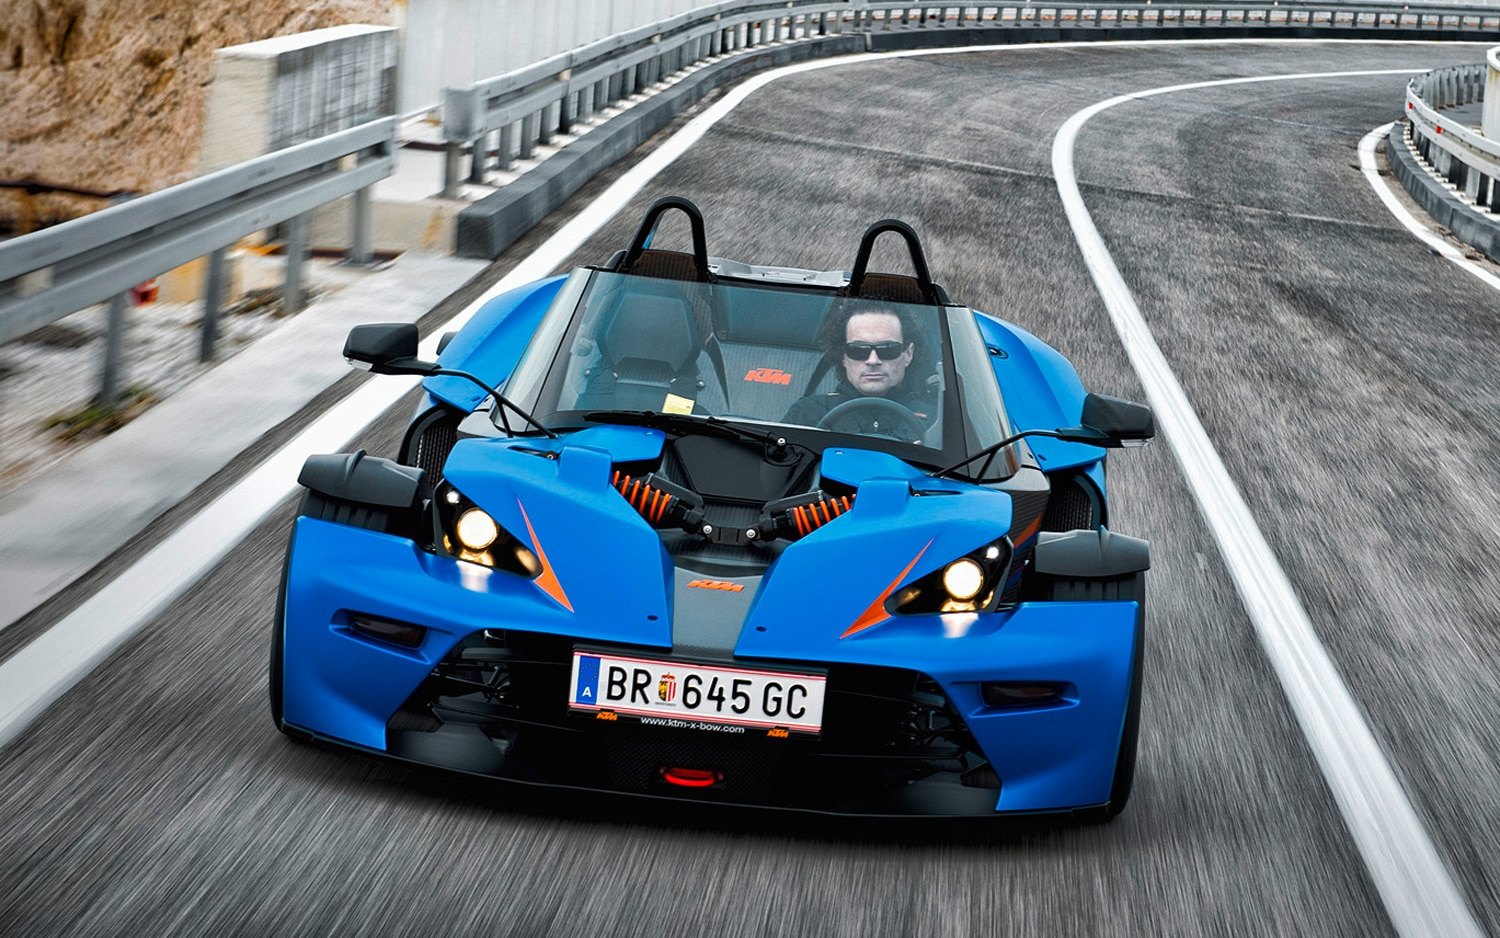 Geneva 2013: KTM X-Bow GT Adds Wraparound Windshield, Wipers